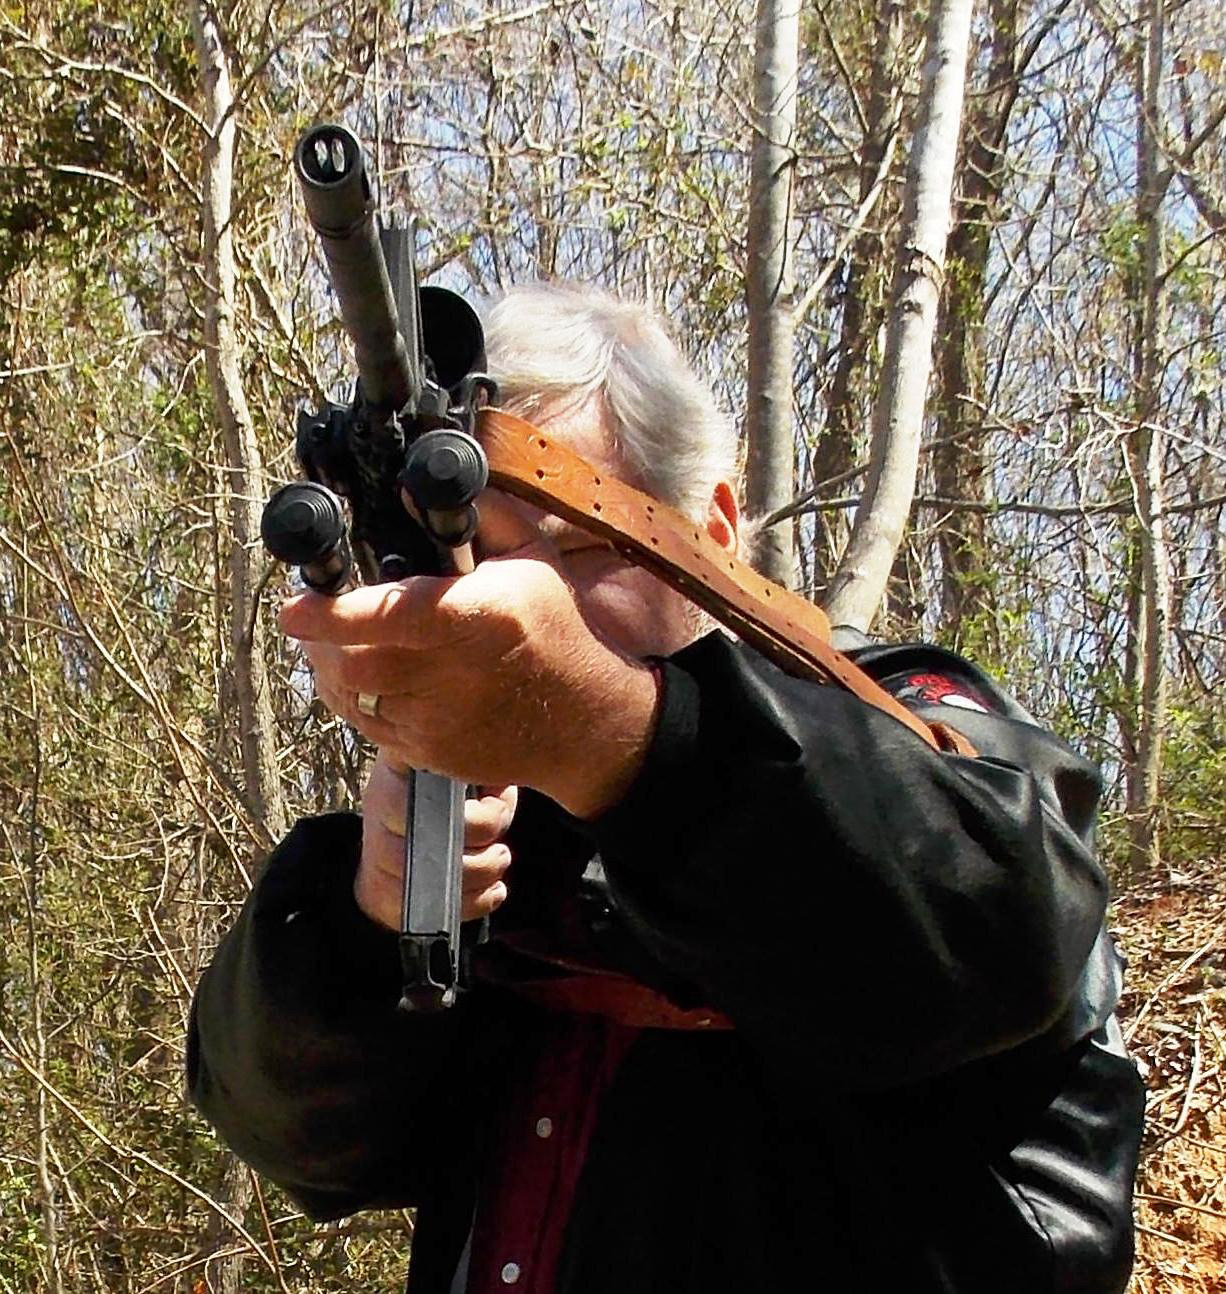 Bob Campbell shooting a rifle with a sling